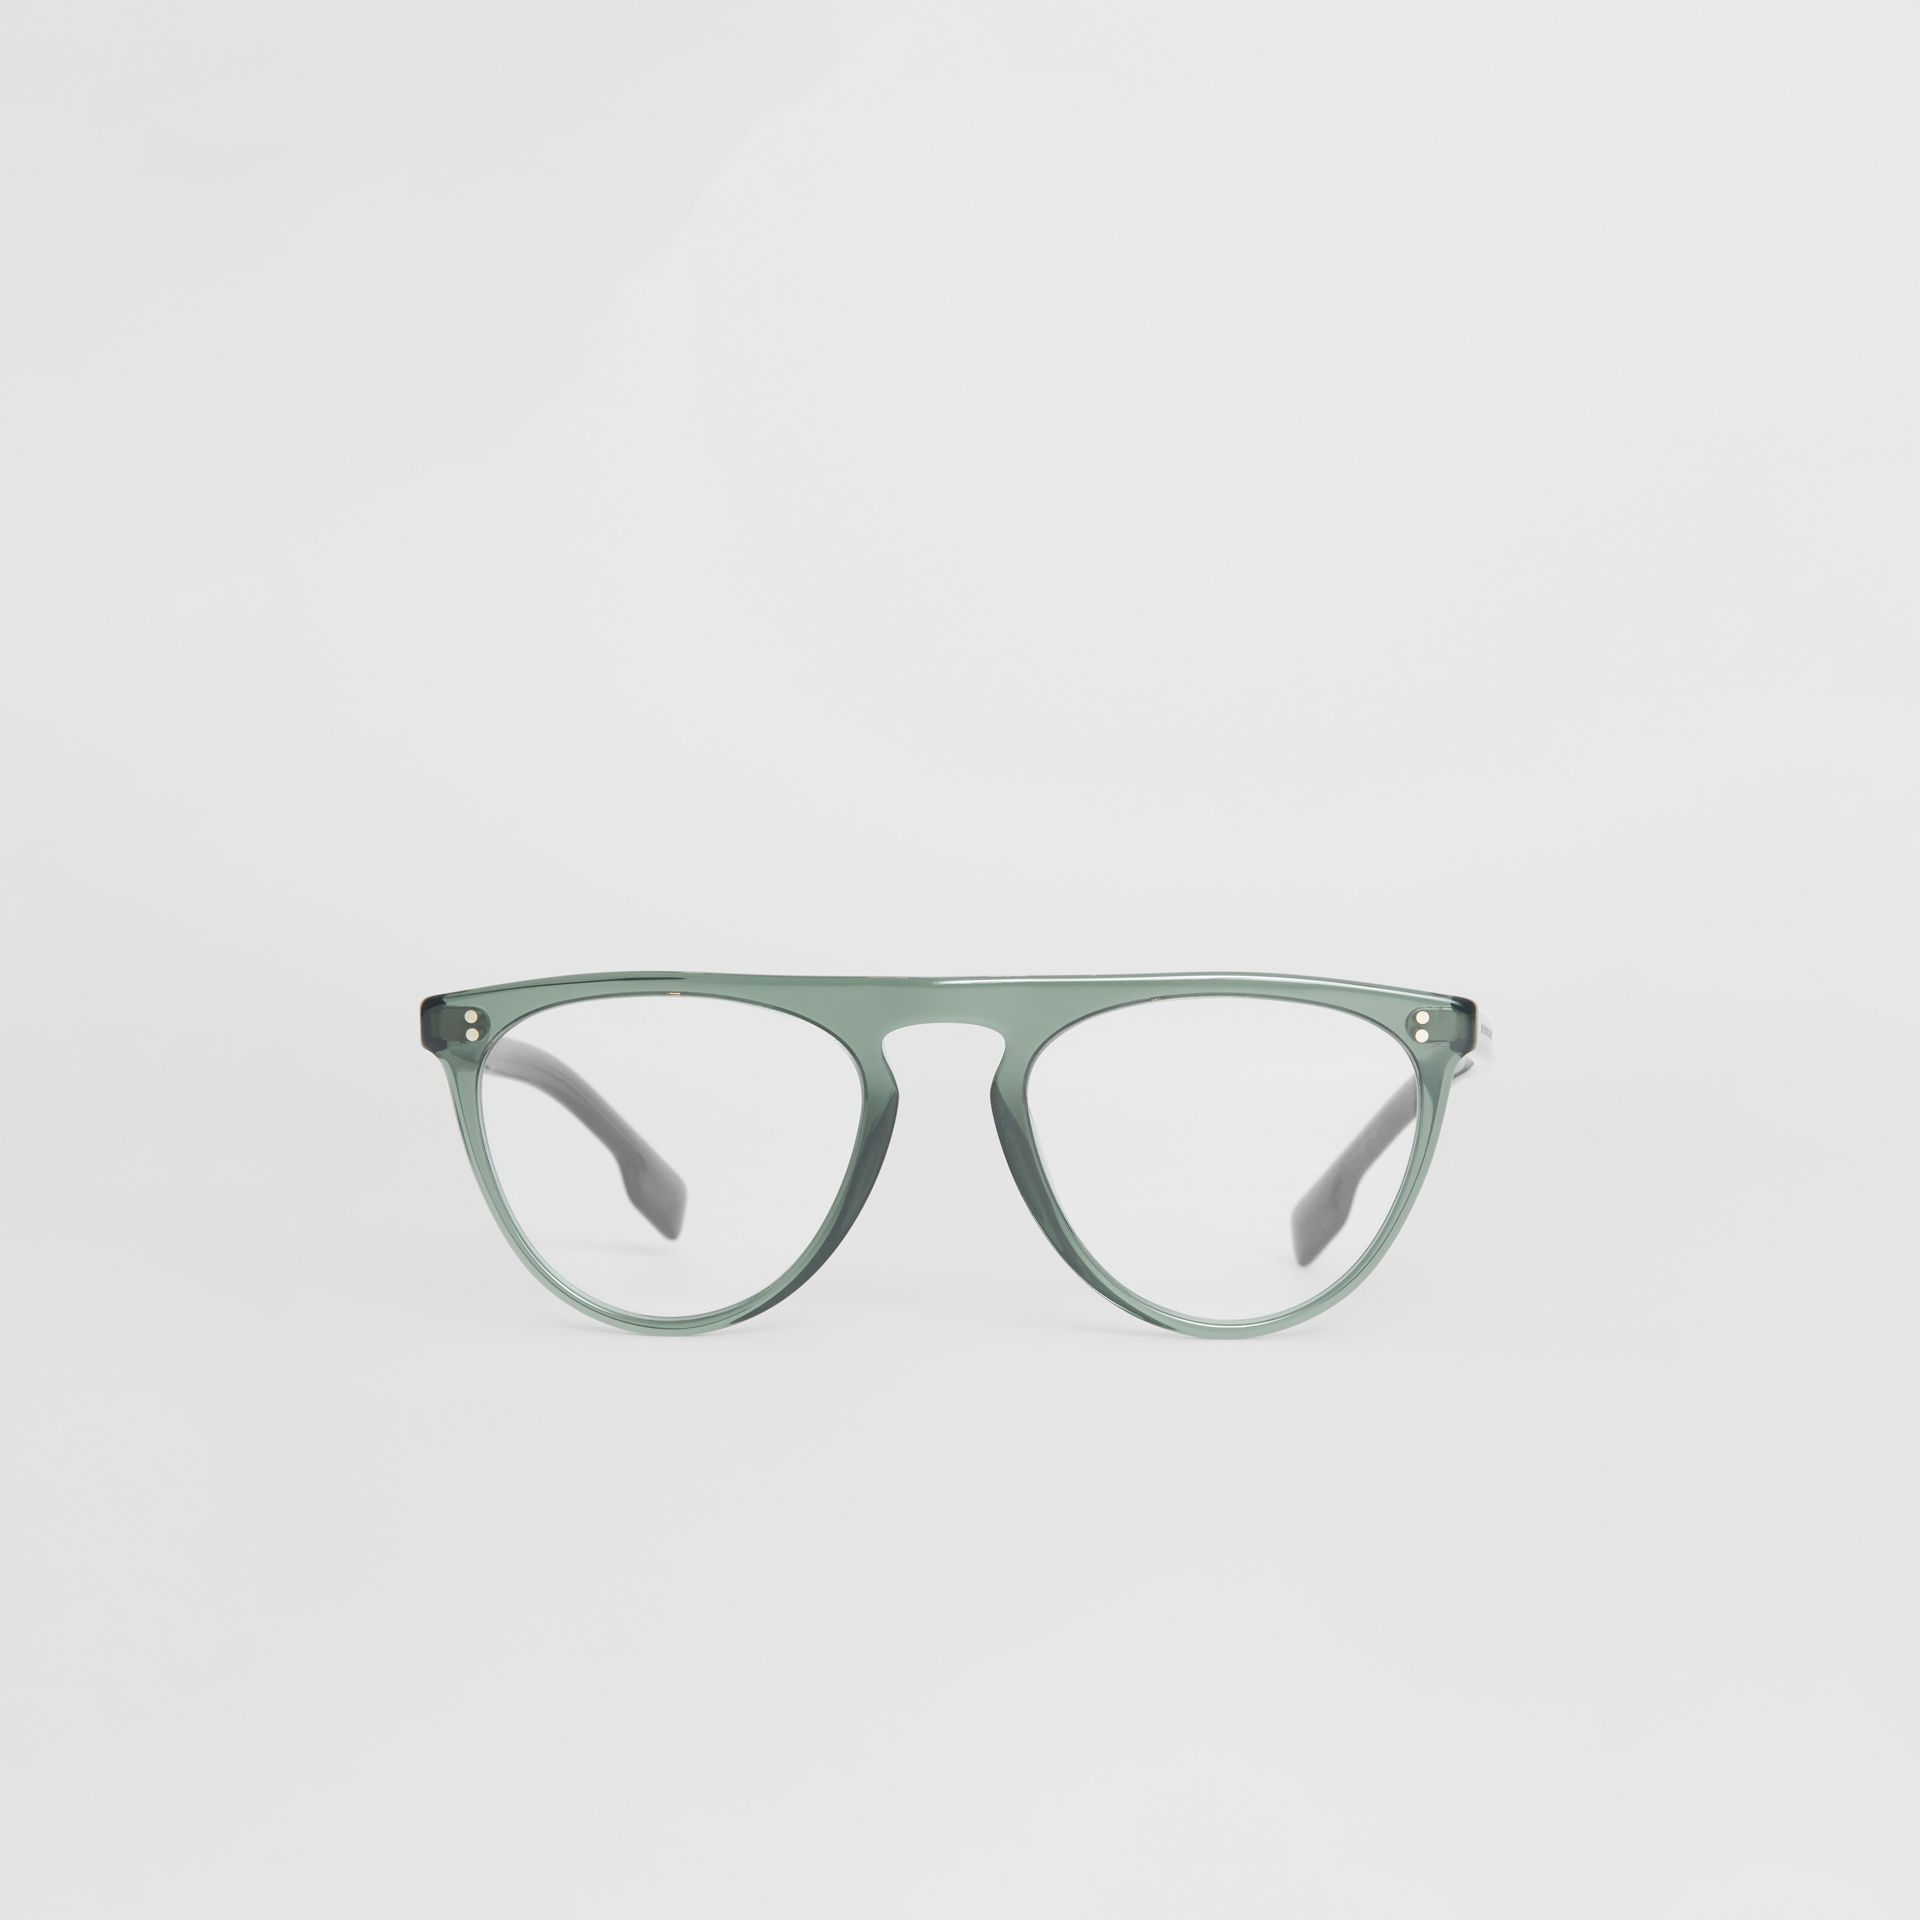 Keyhole D-shaped Optical Frames in Green - Men | Burberry United Kingdom - gallery image 0